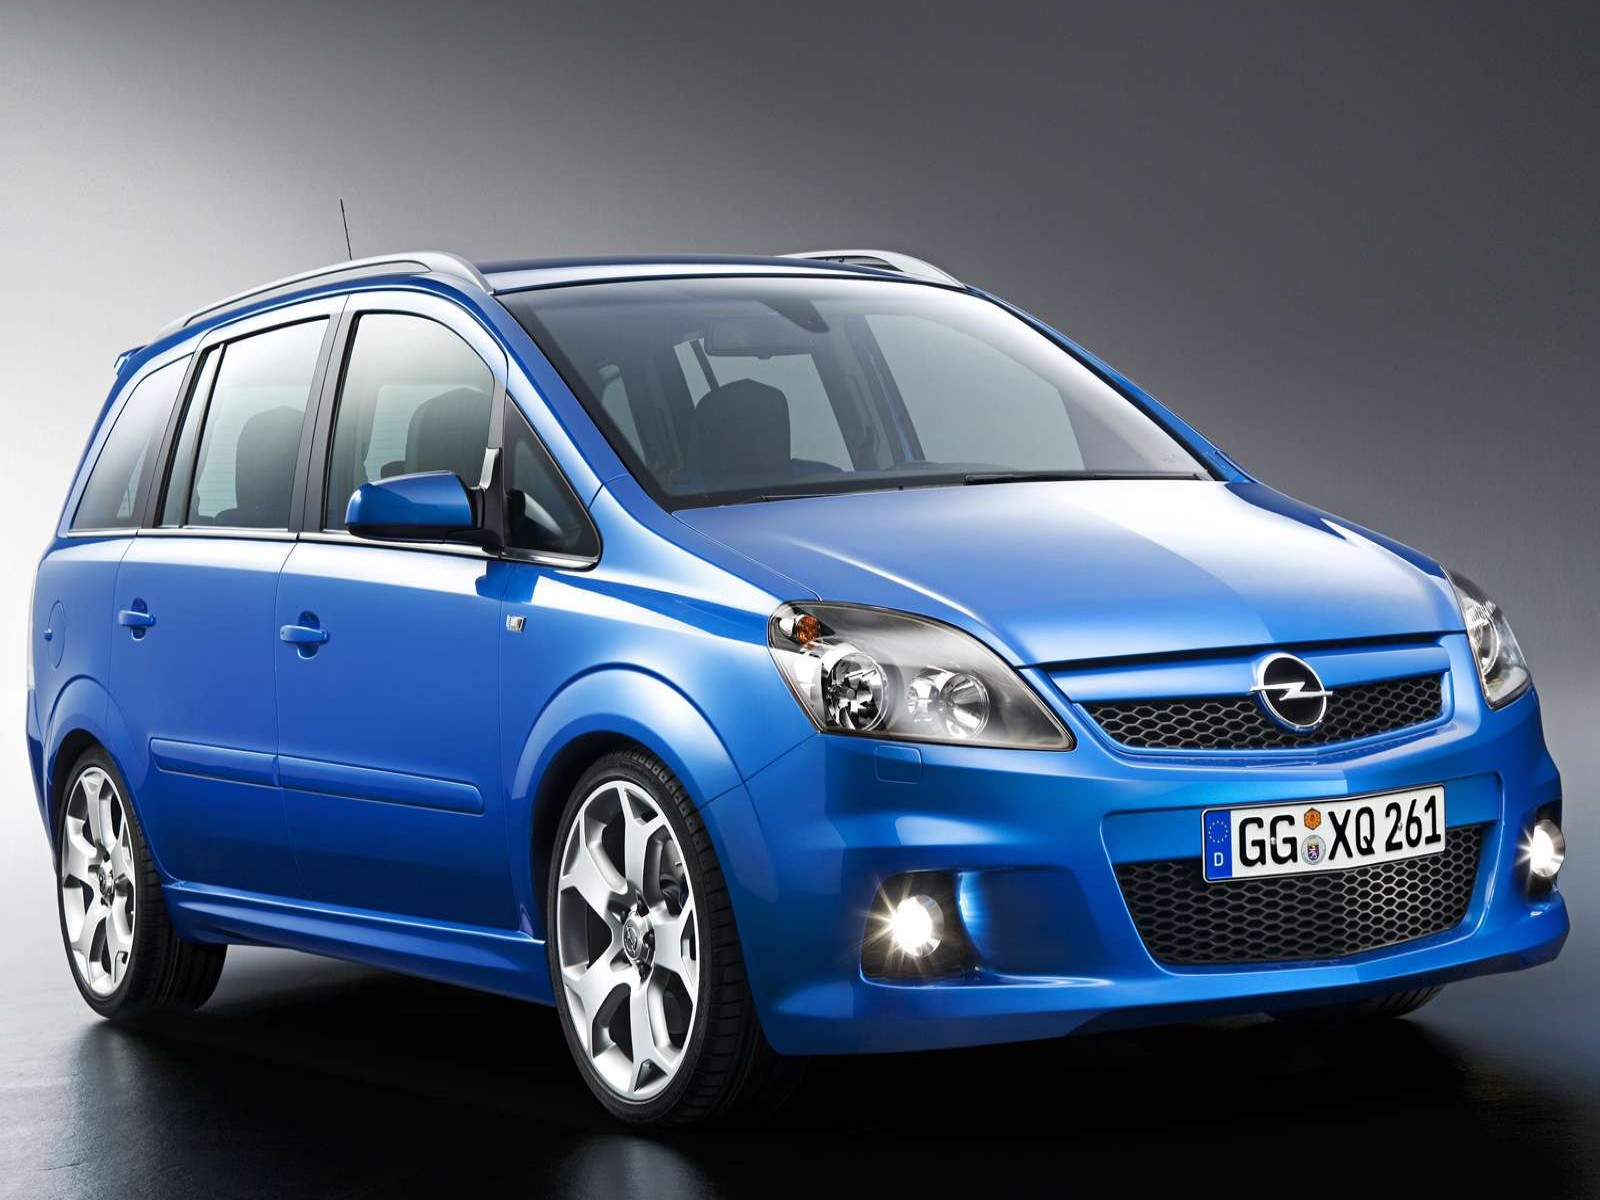 car and car zone opel zafira opc 2005 new cars car reviews car pictures and auto industry trends. Black Bedroom Furniture Sets. Home Design Ideas